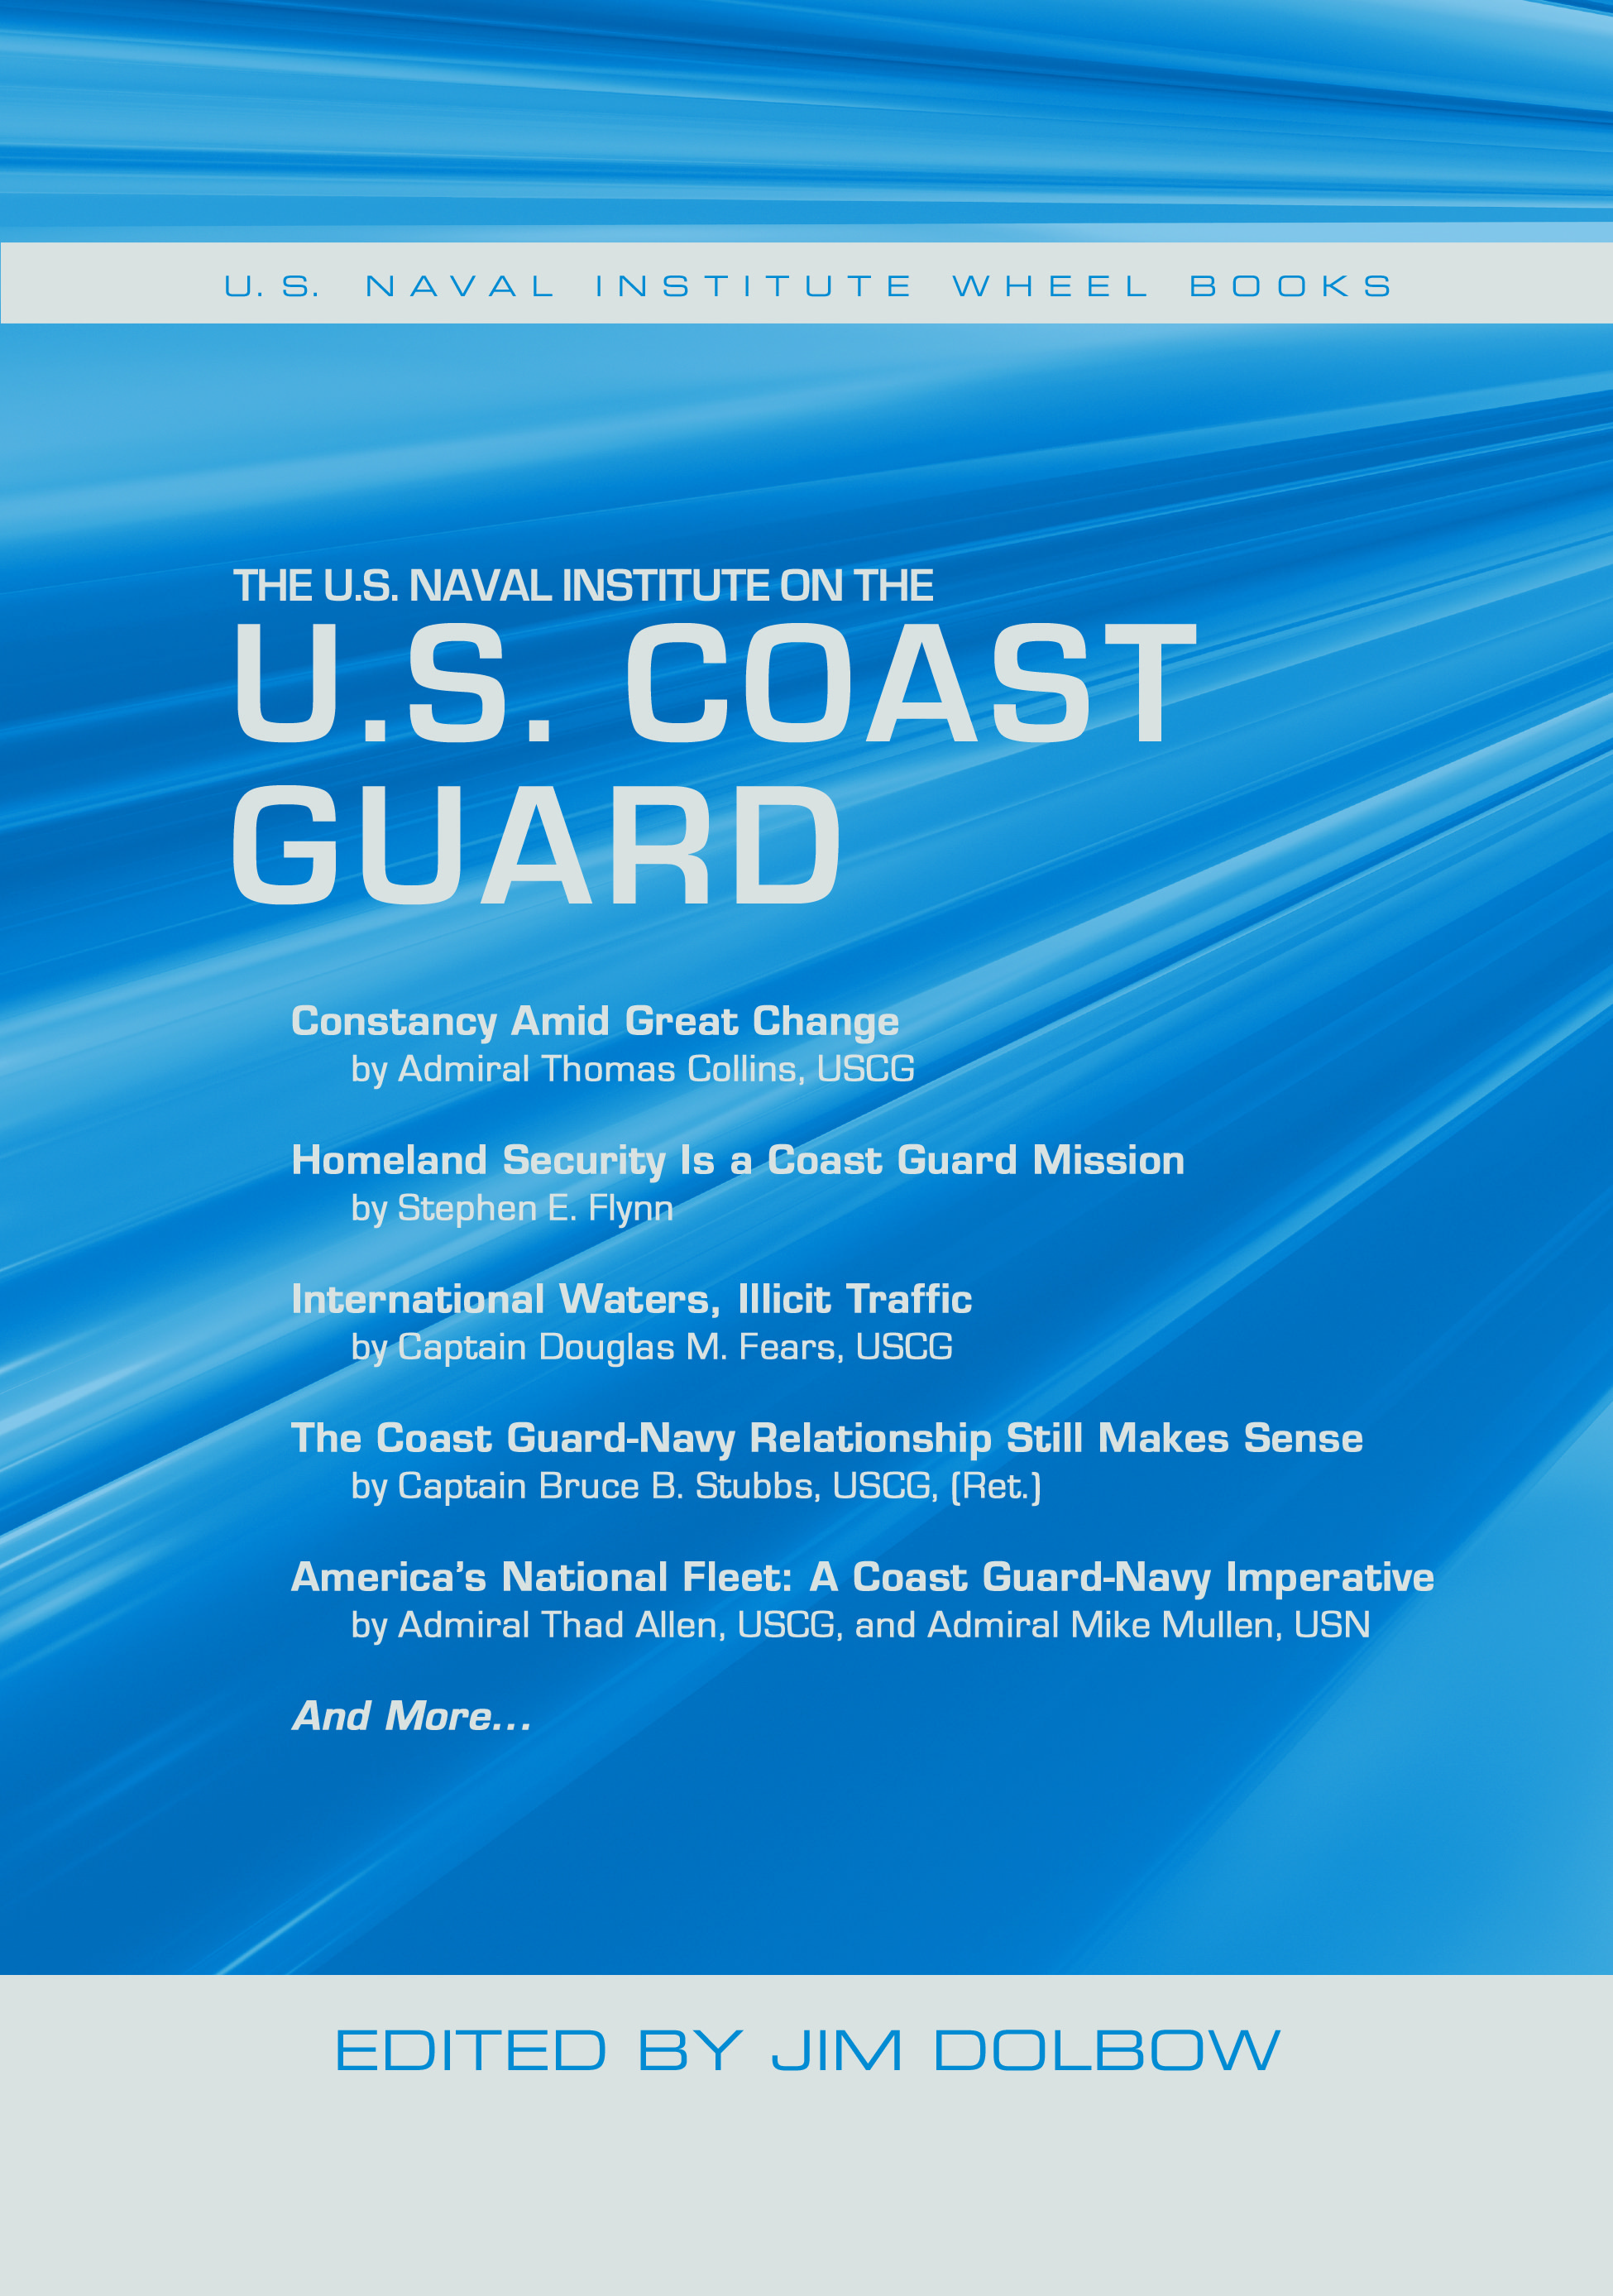 US Coast Guard, edited by Jim Dolbow